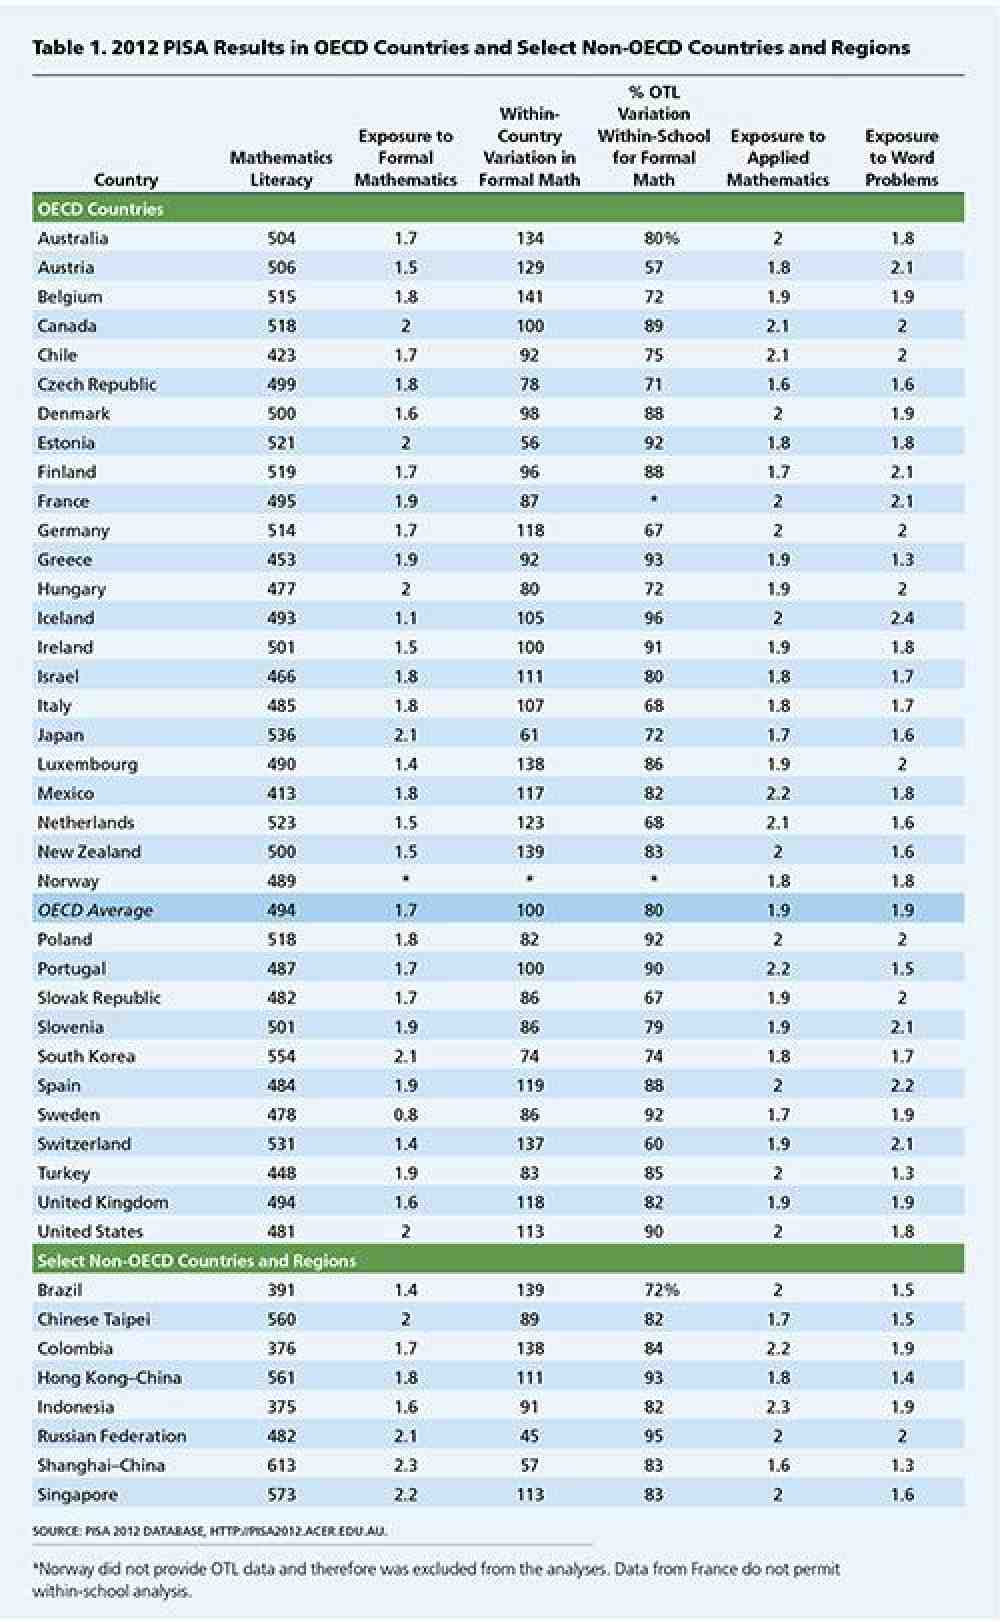 Table 1: 2012 PISA Results in OECD Countries and Select Non-OECD Countries and Regions